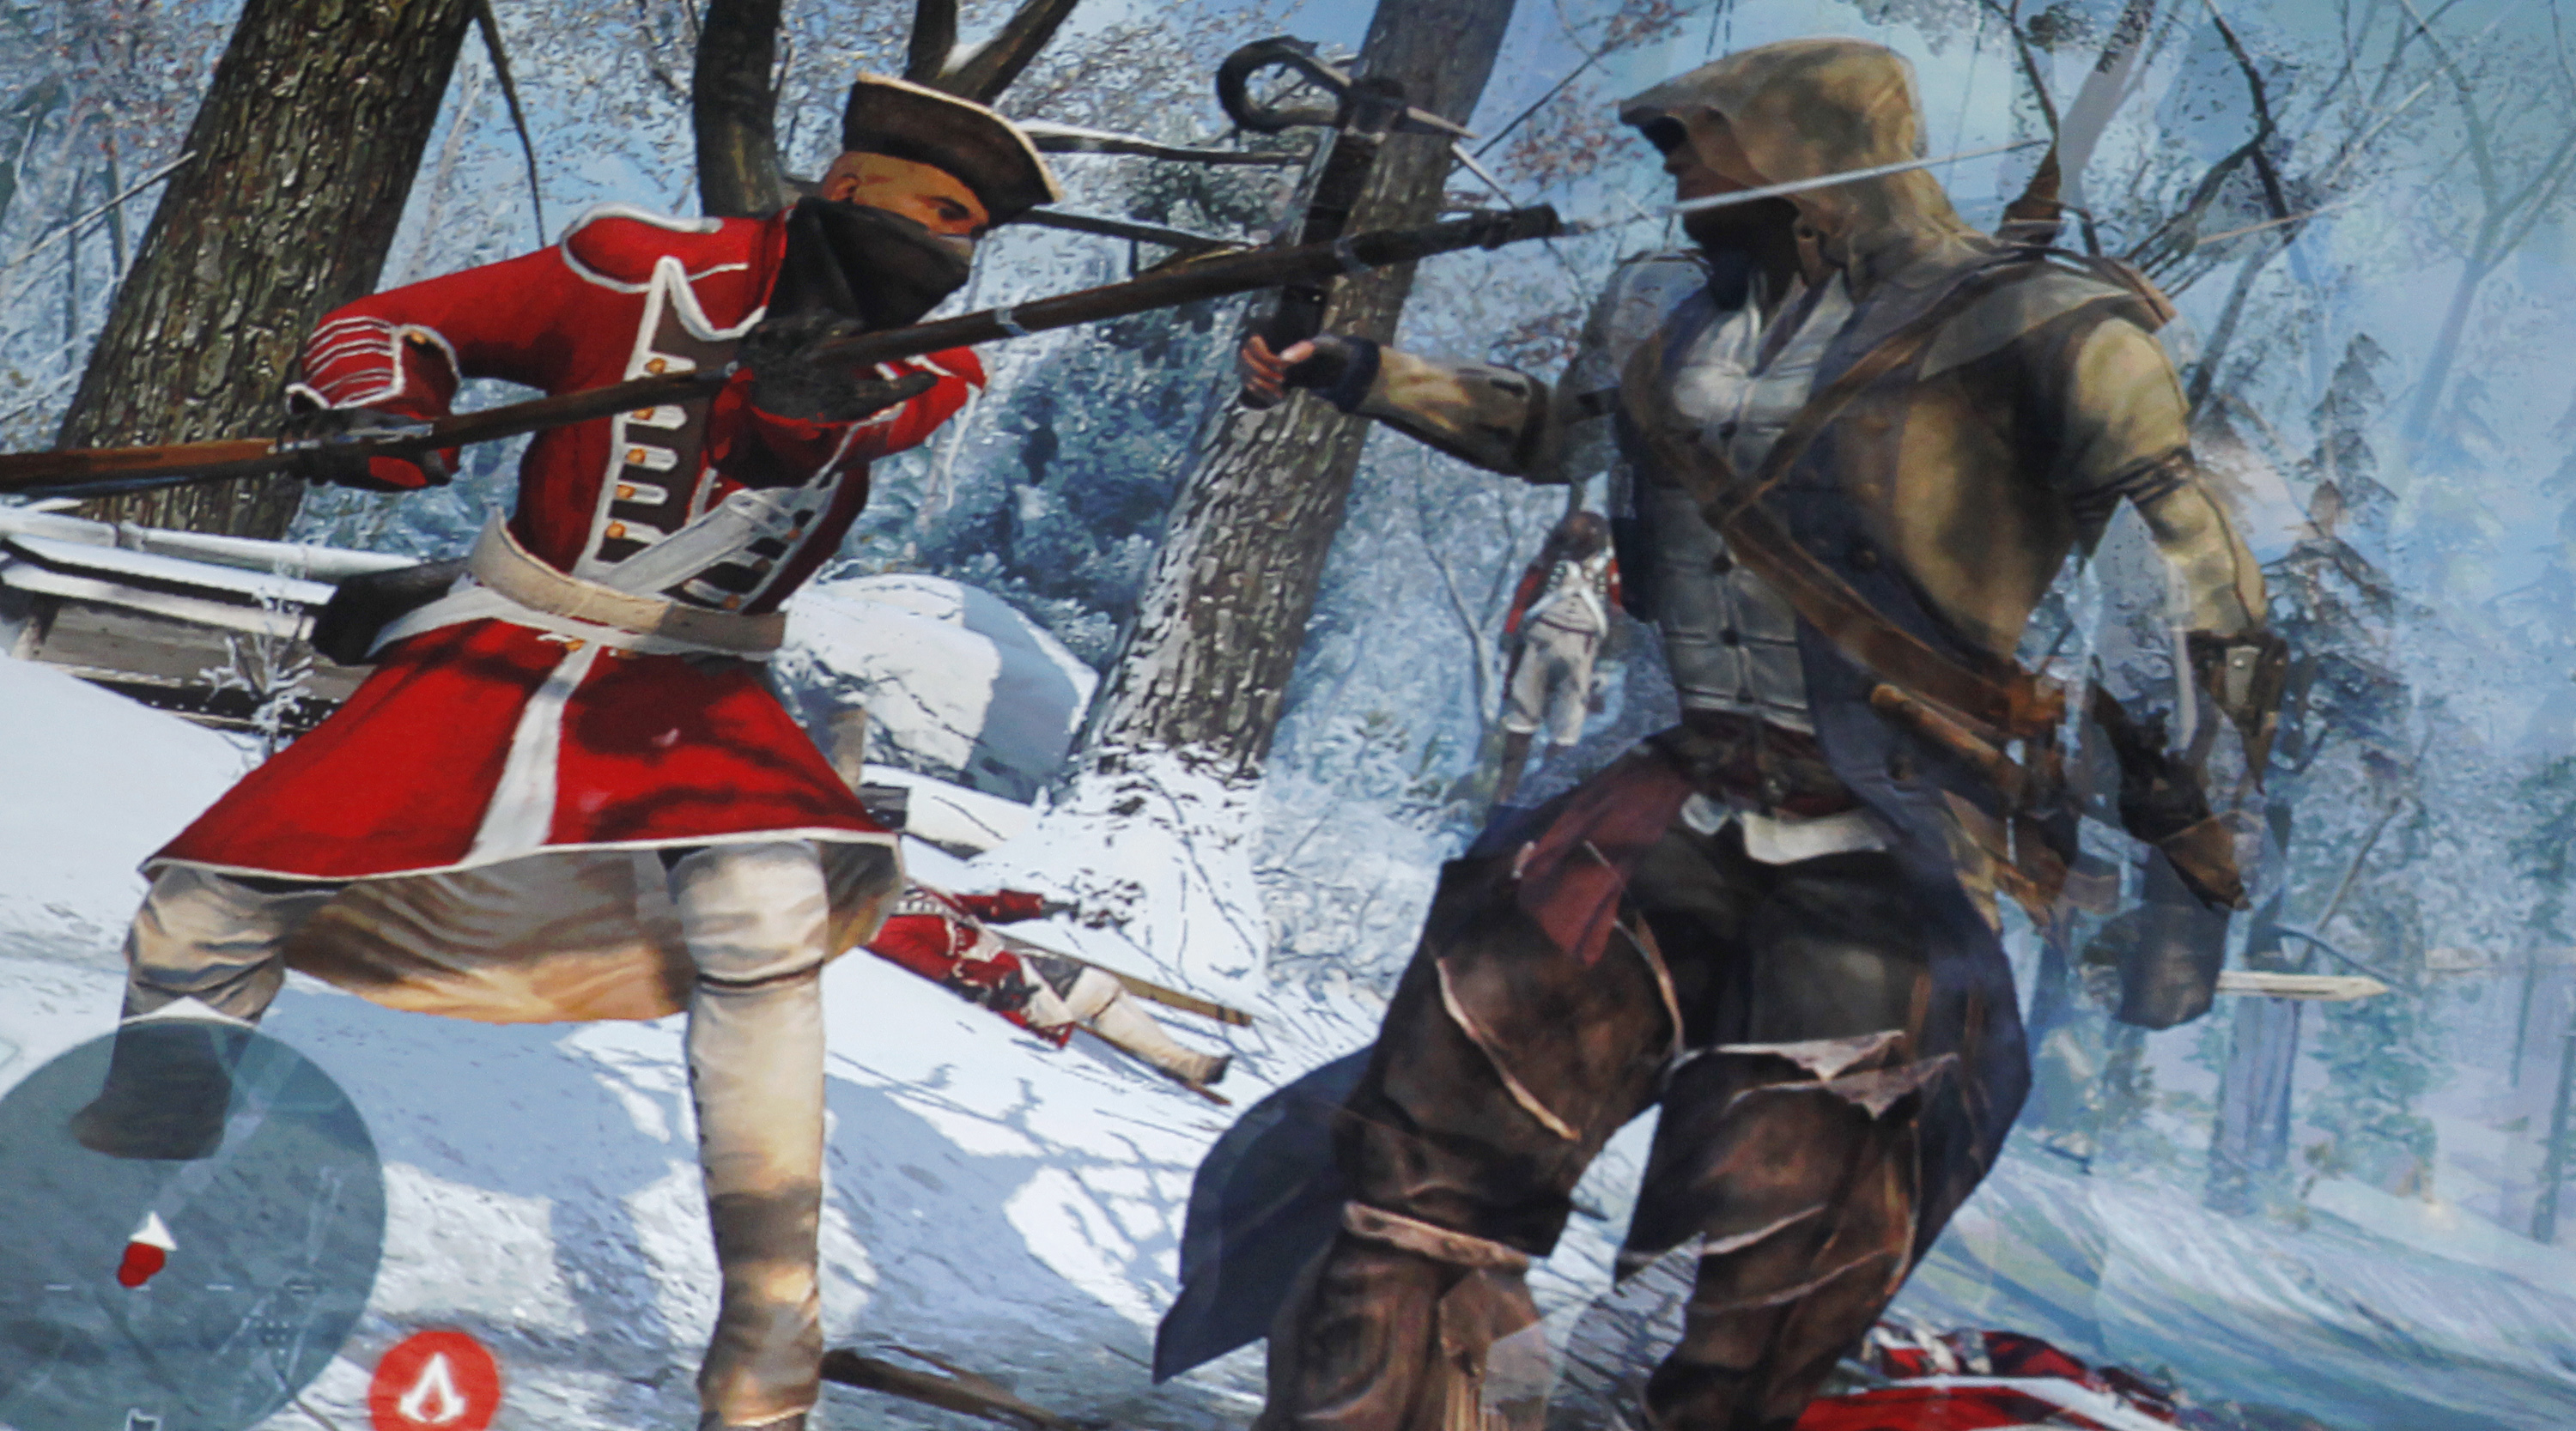 """A scene from the new video game """"Assassin's Creed III"""" is presented at the Ubisoft press briefing during the E3 game expo in Los Angeles, California June 4, 2012."""